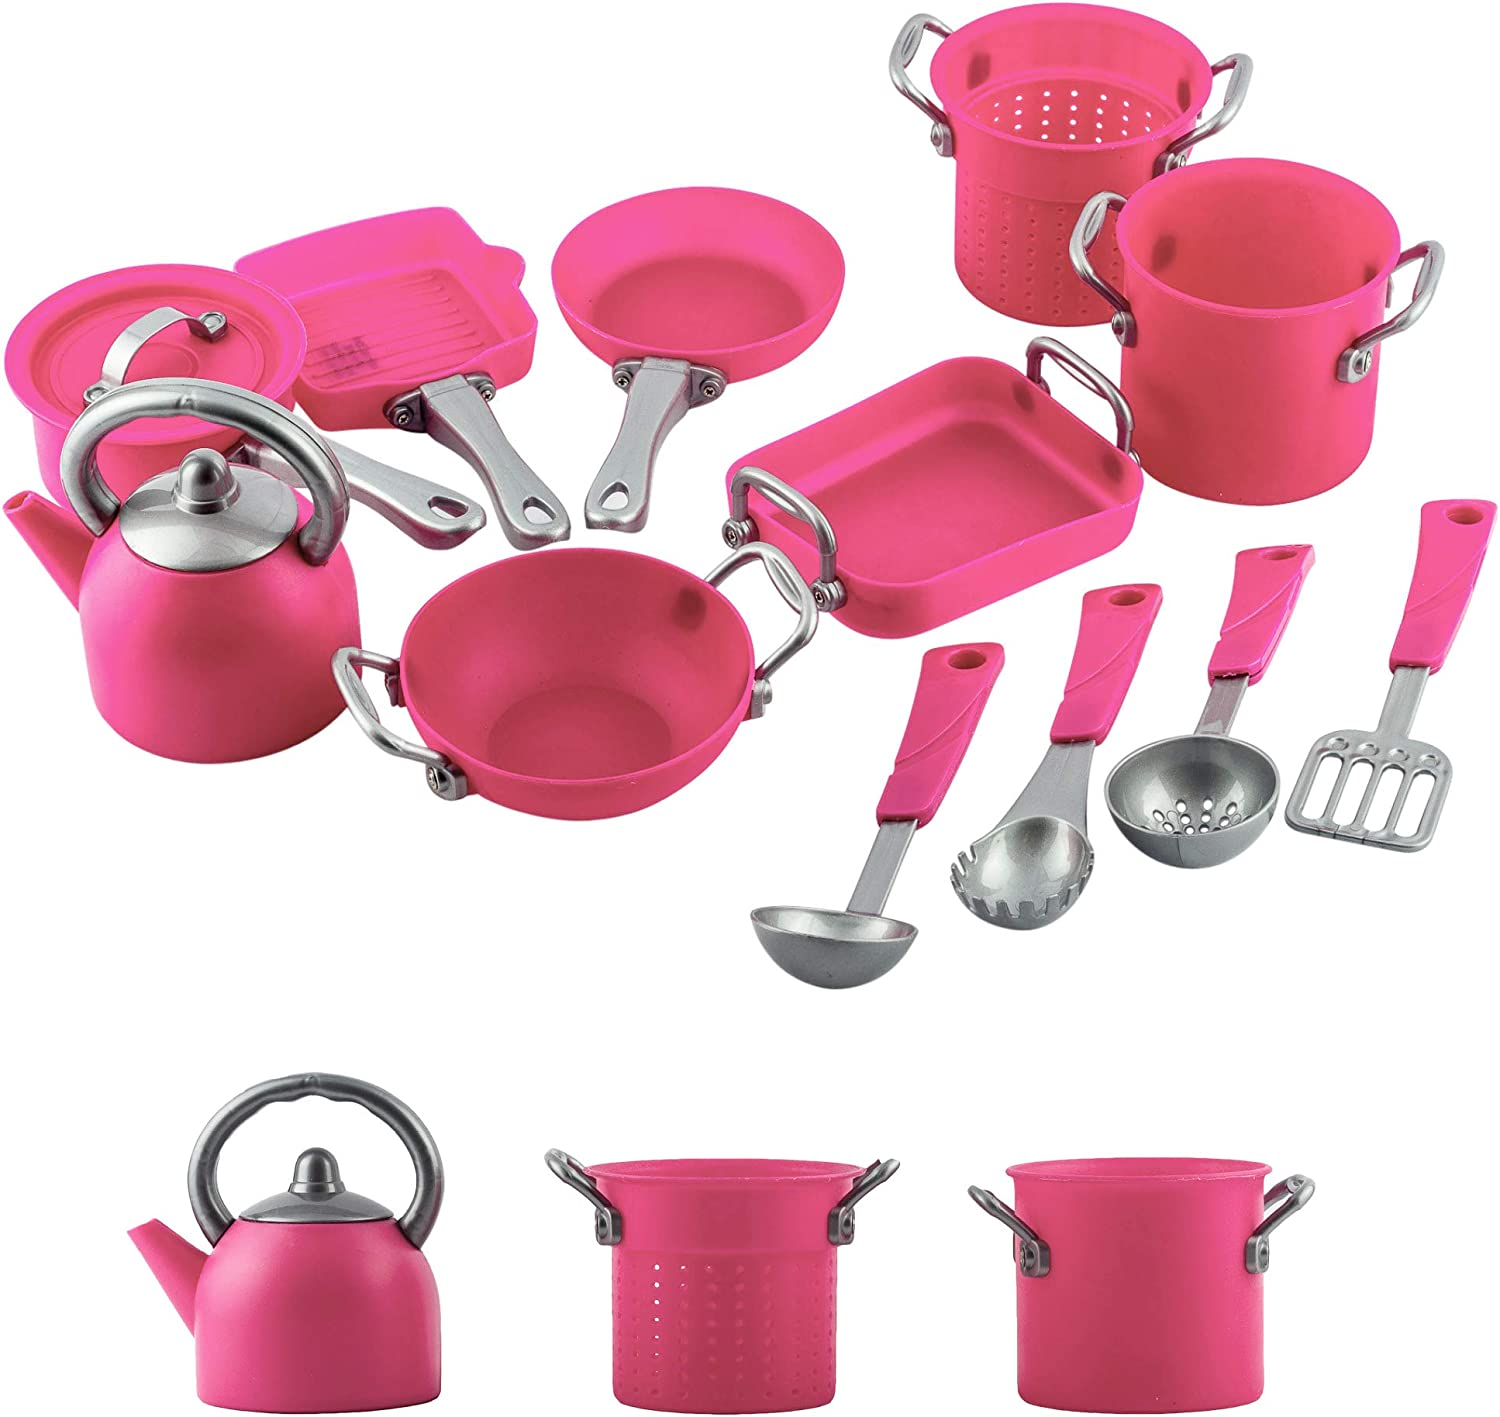 Liberty Imports Deluxe Pink Kitchen Gourmet Cookware Pots and Pans Premium Playset for Girls 13 Pcs